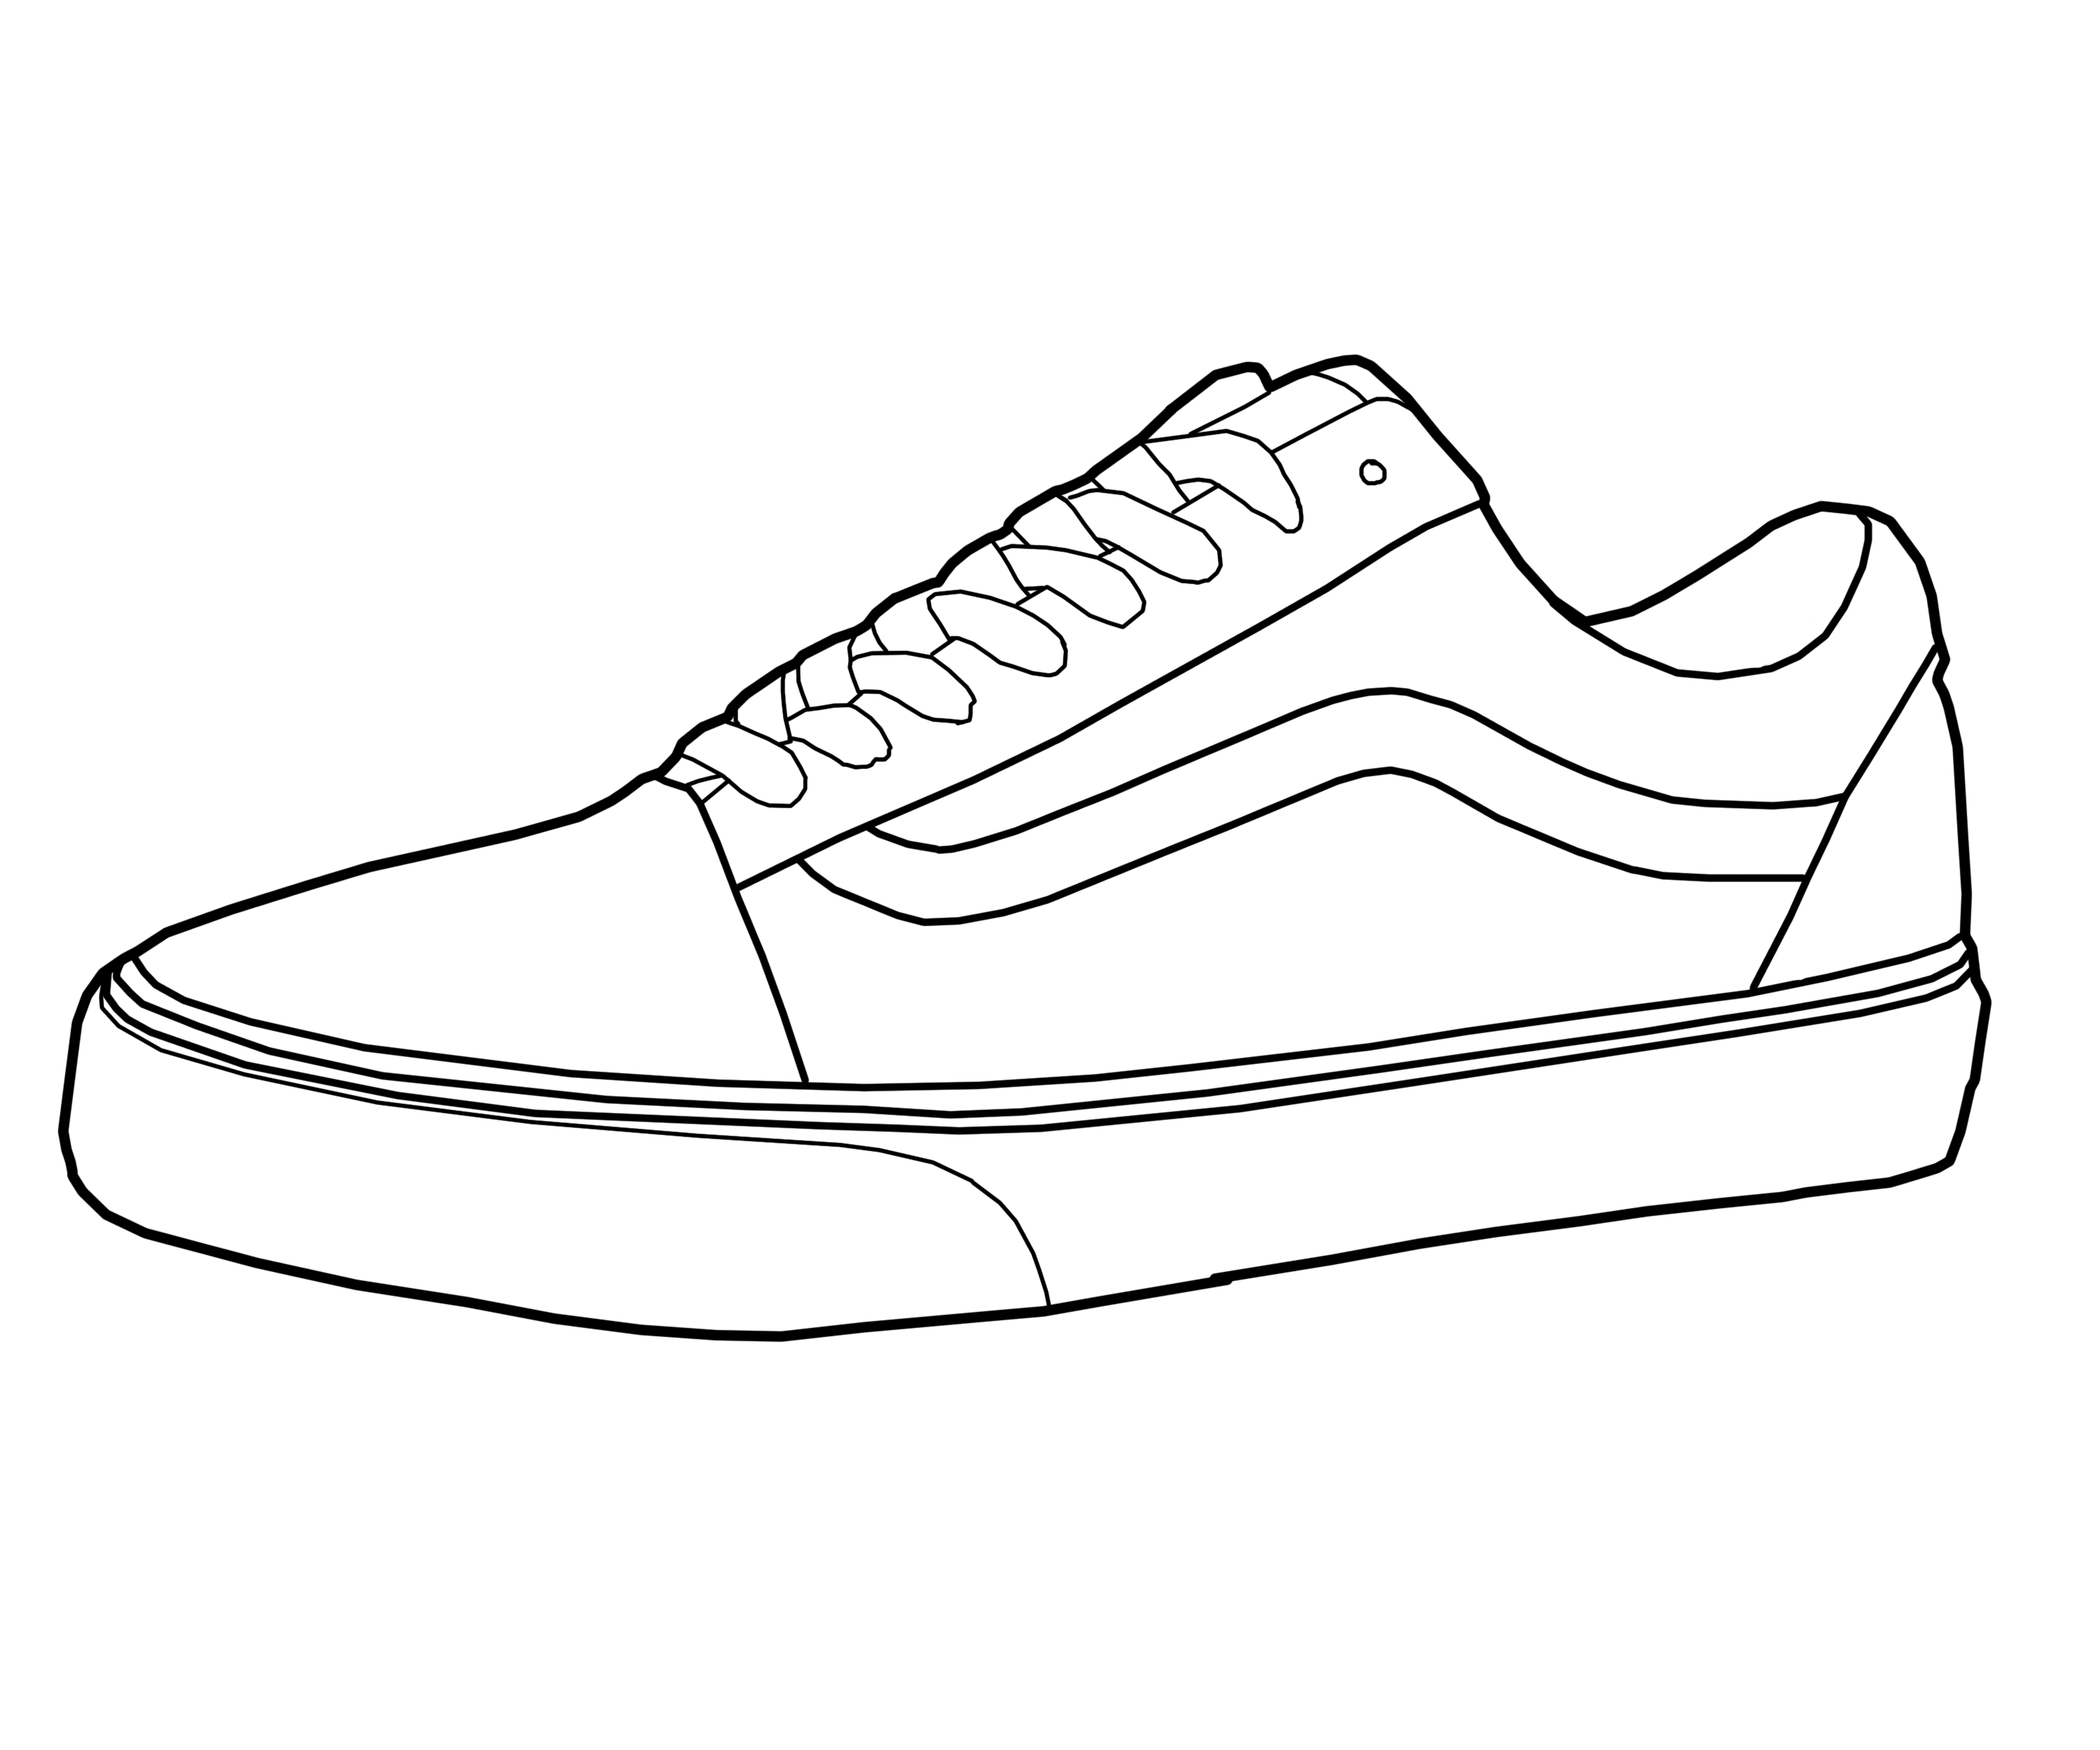 how to draw a simple shoe simple shoe drawing at getdrawings free download a how draw shoe to simple